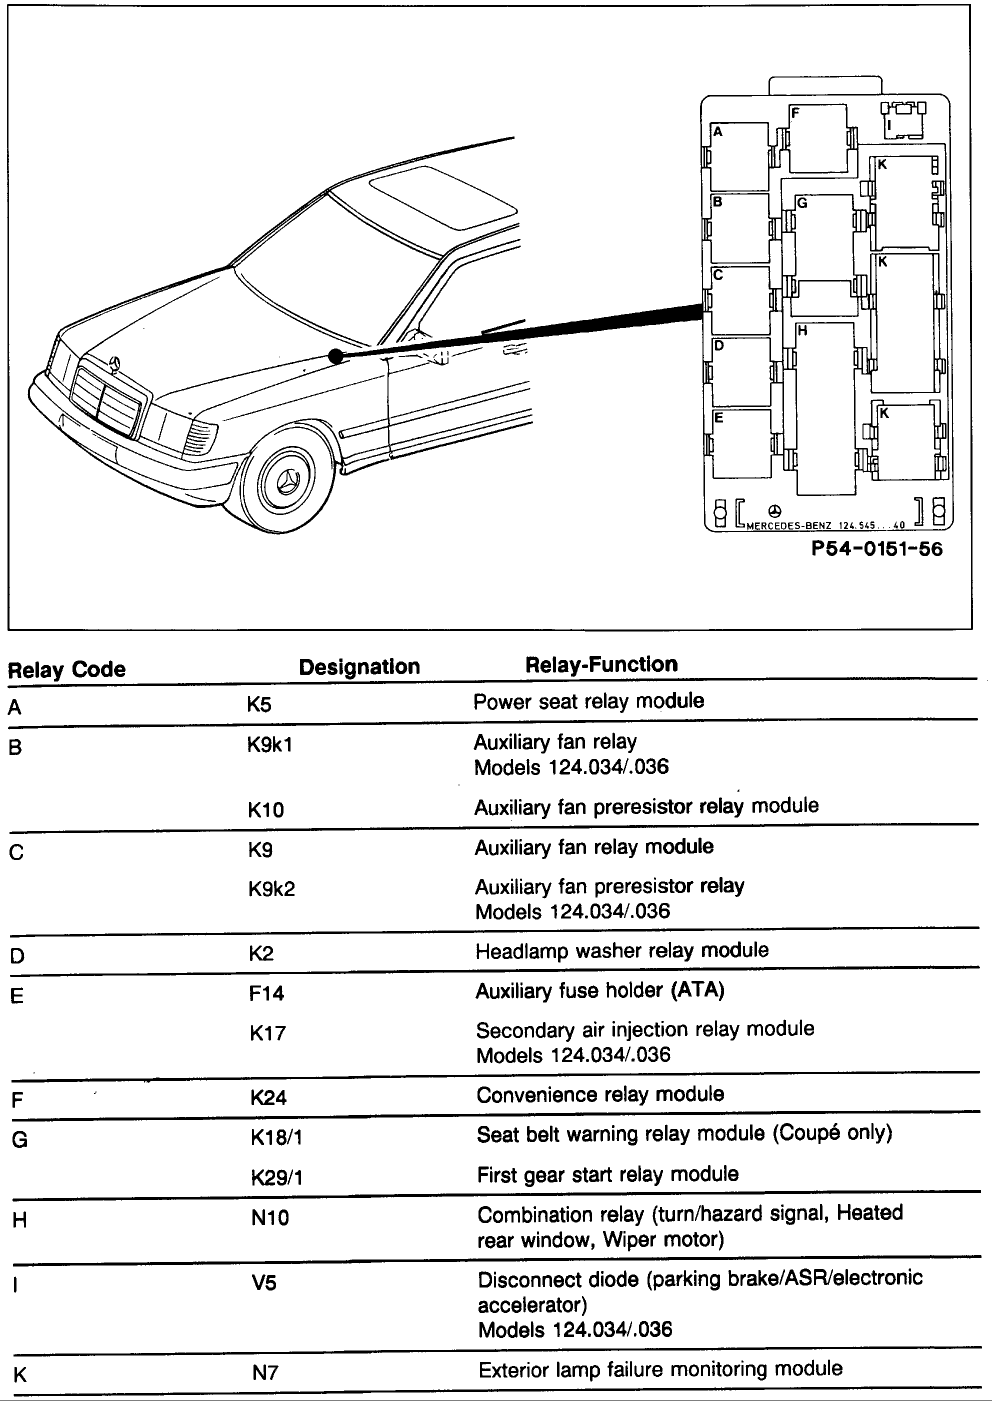 1995 Mercedes Fuse Diagram Micro Usb 12 Volt Wire Harness Hazzardzz Tehsusu Decorresine It